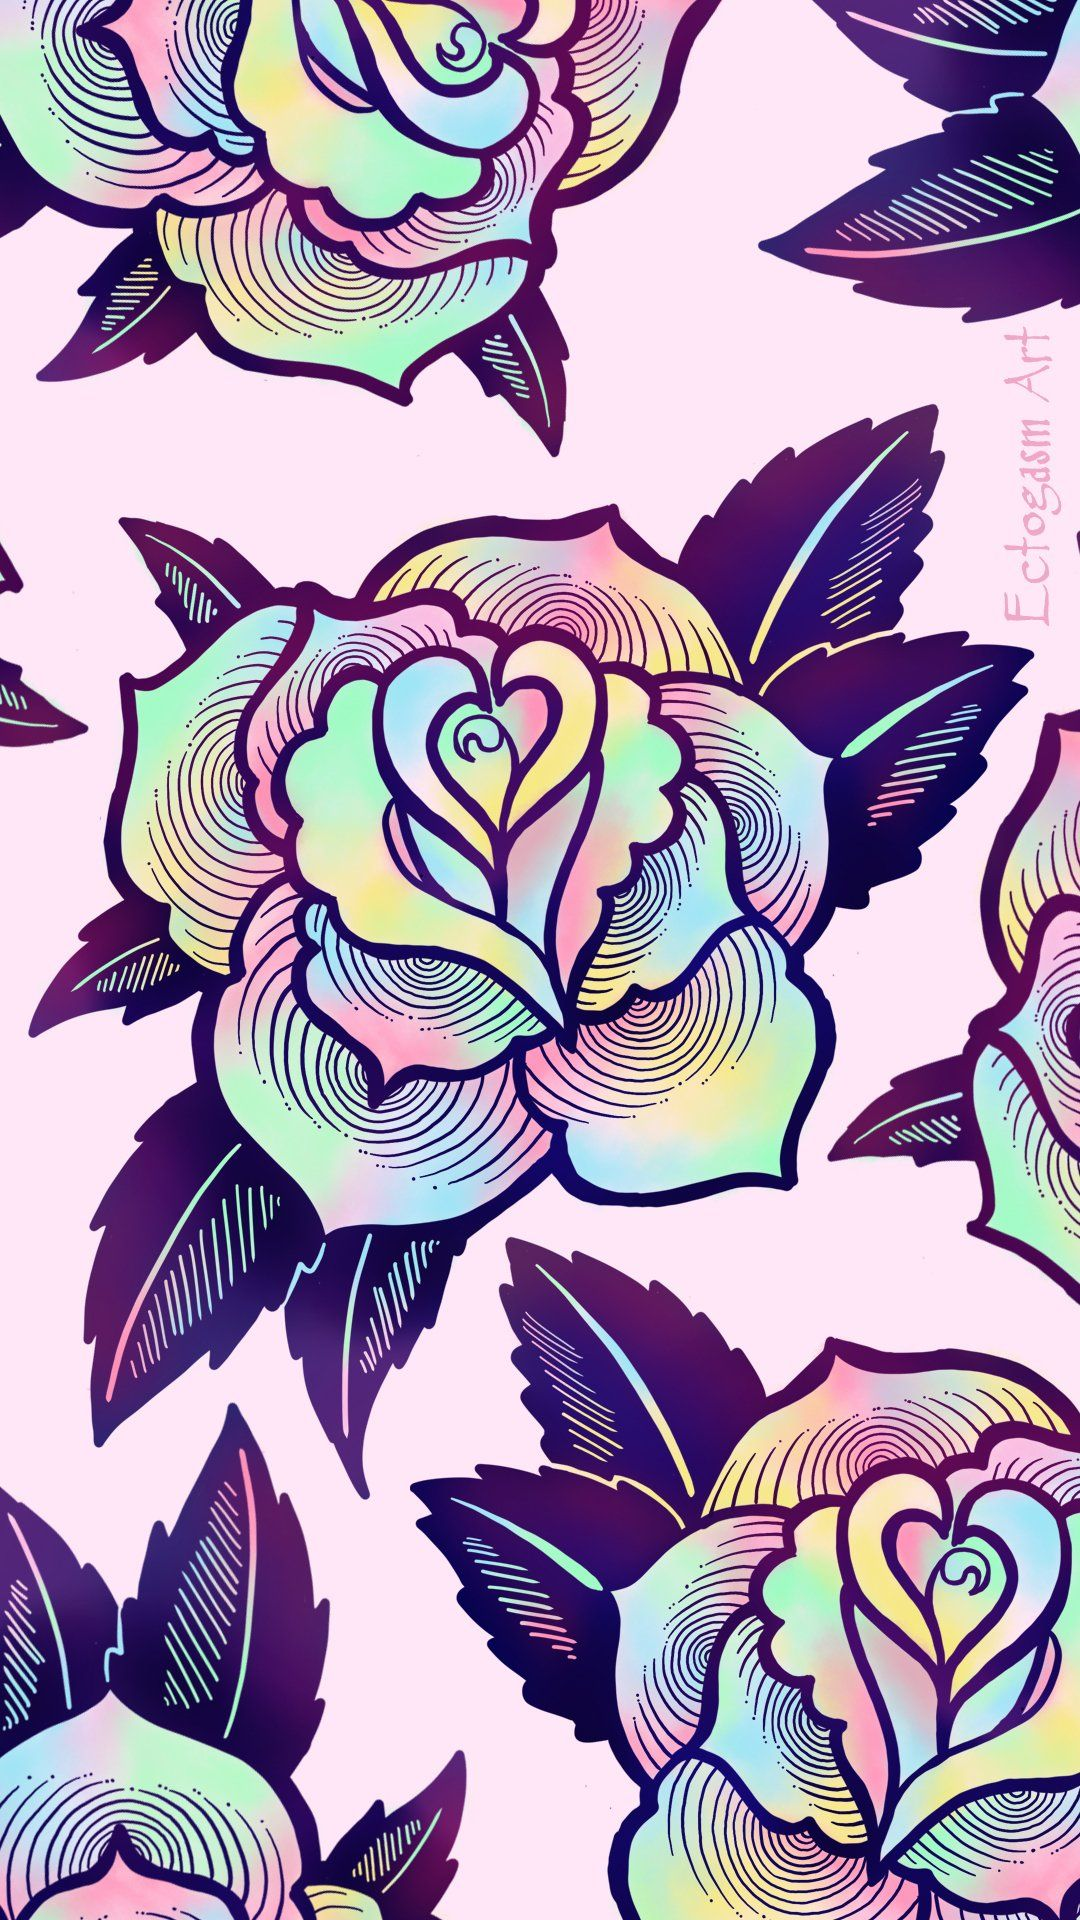 1080x1920 Psychedelic Rose Phone Wallpaper - Free Digital Download ...